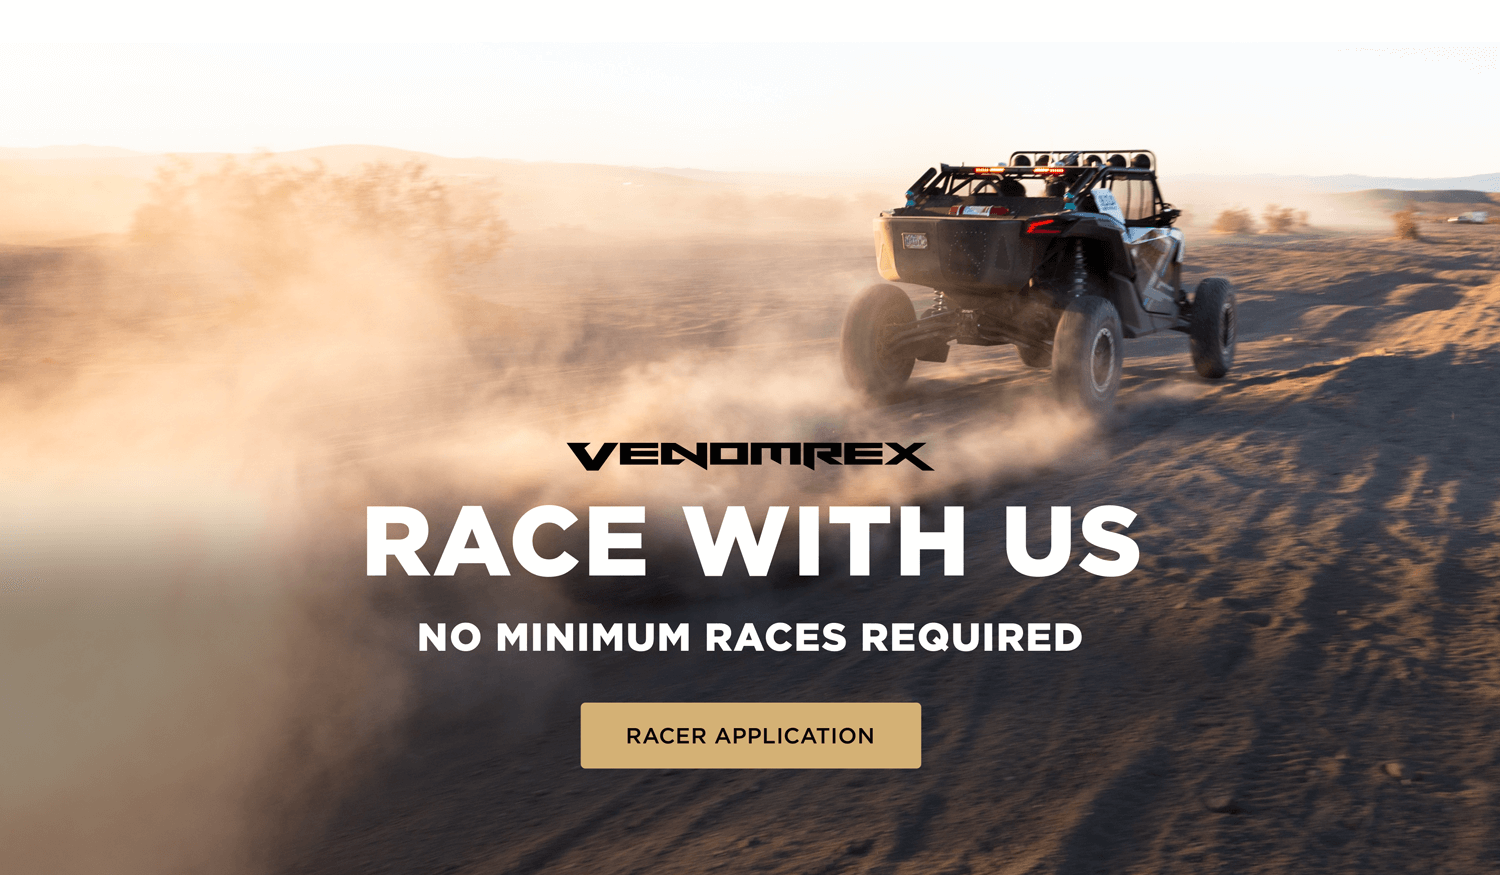 RACE WITH US